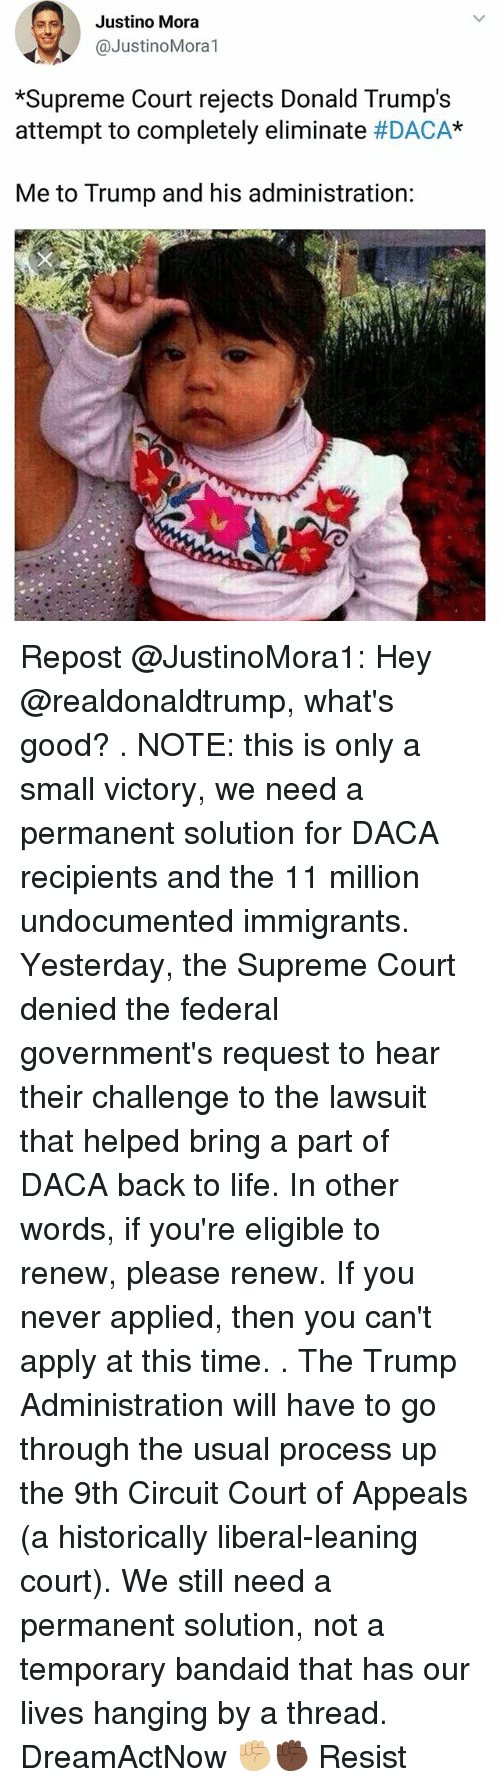 "bandaid: Justino Mora  @JustinoMora1  *Supreme Court rejects Donald Trump's  attempt to completely eliminate #DACA""  Me to Trump and his administration: Repost @JustinoMora1: Hey @realdonaldtrump, what's good? . NOTE: this is only a small victory, we need a permanent solution for DACA recipients and the 11 million undocumented immigrants. Yesterday, the Supreme Court denied the federal government's request to hear their challenge to the lawsuit that helped bring a part of DACA back to life. In other words, if you're eligible to renew, please renew. If you never applied, then you can't apply at this time. . The Trump Administration will have to go through the usual process up the 9th Circuit Court of Appeals (a historically liberal-leaning court). We still need a permanent solution, not a temporary bandaid that has our lives hanging by a thread. DreamActNow ✊🏼✊🏿 Resist"